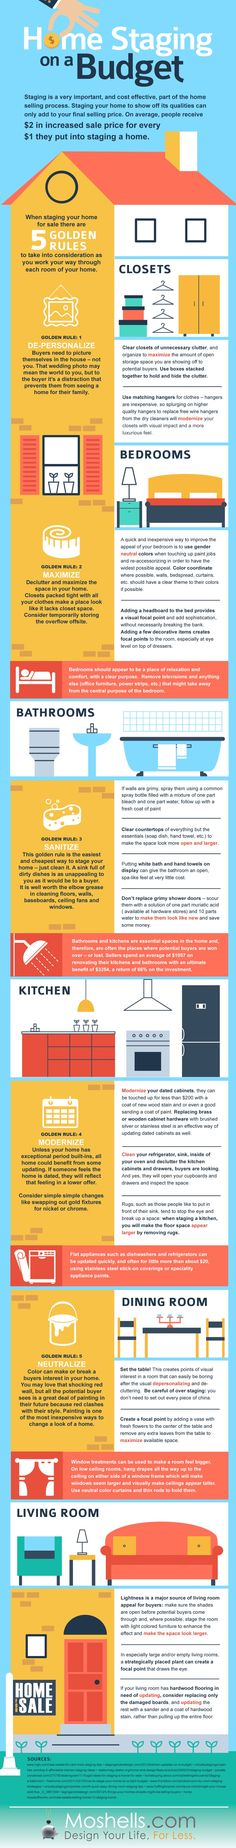 Home Staging on a Budget #Infographic via @inmannews